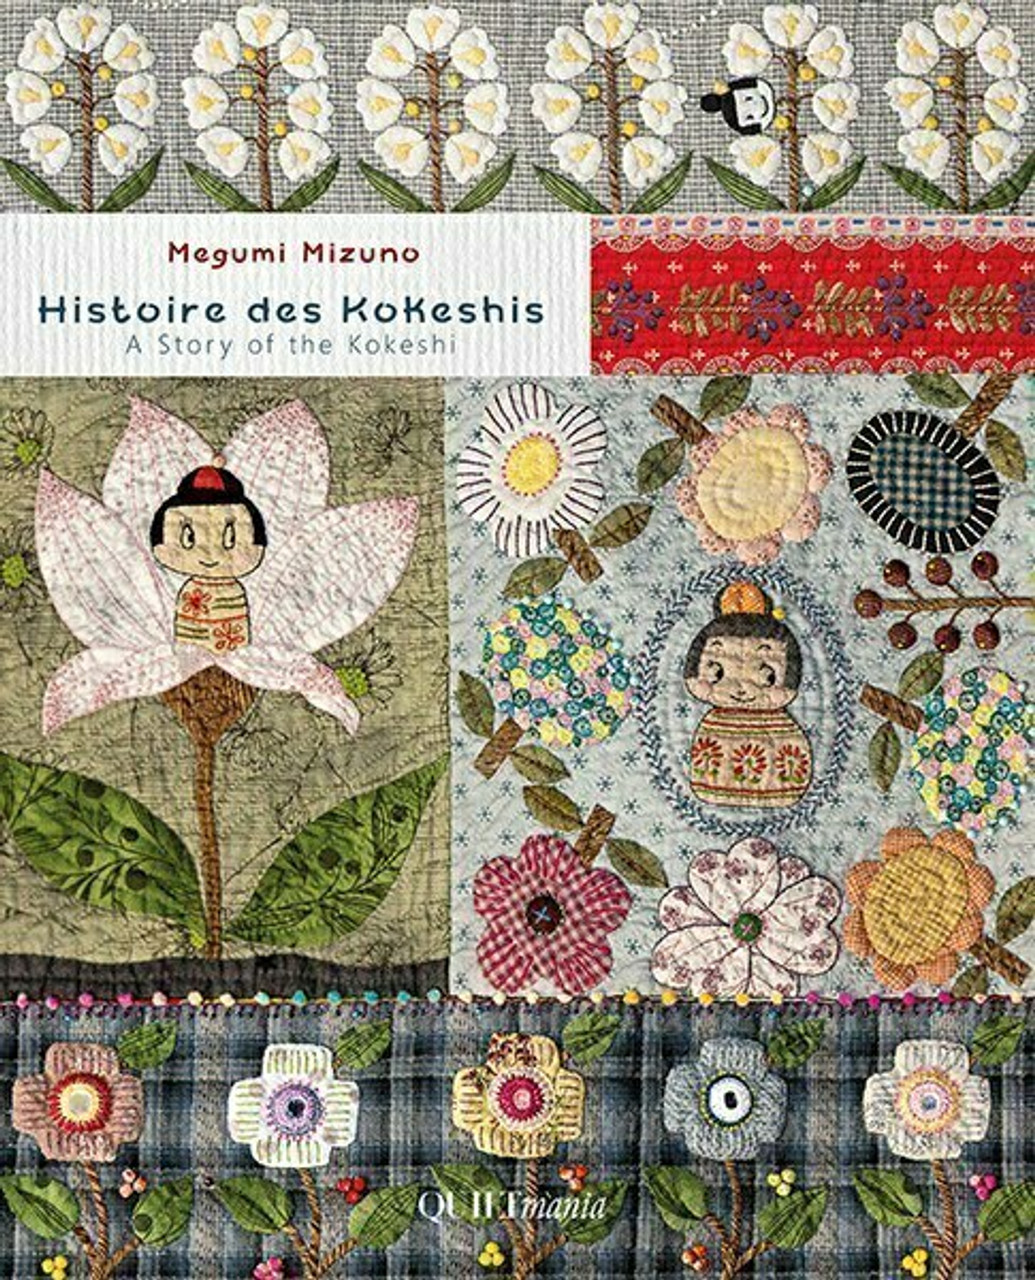 A Story of the Kokeshi